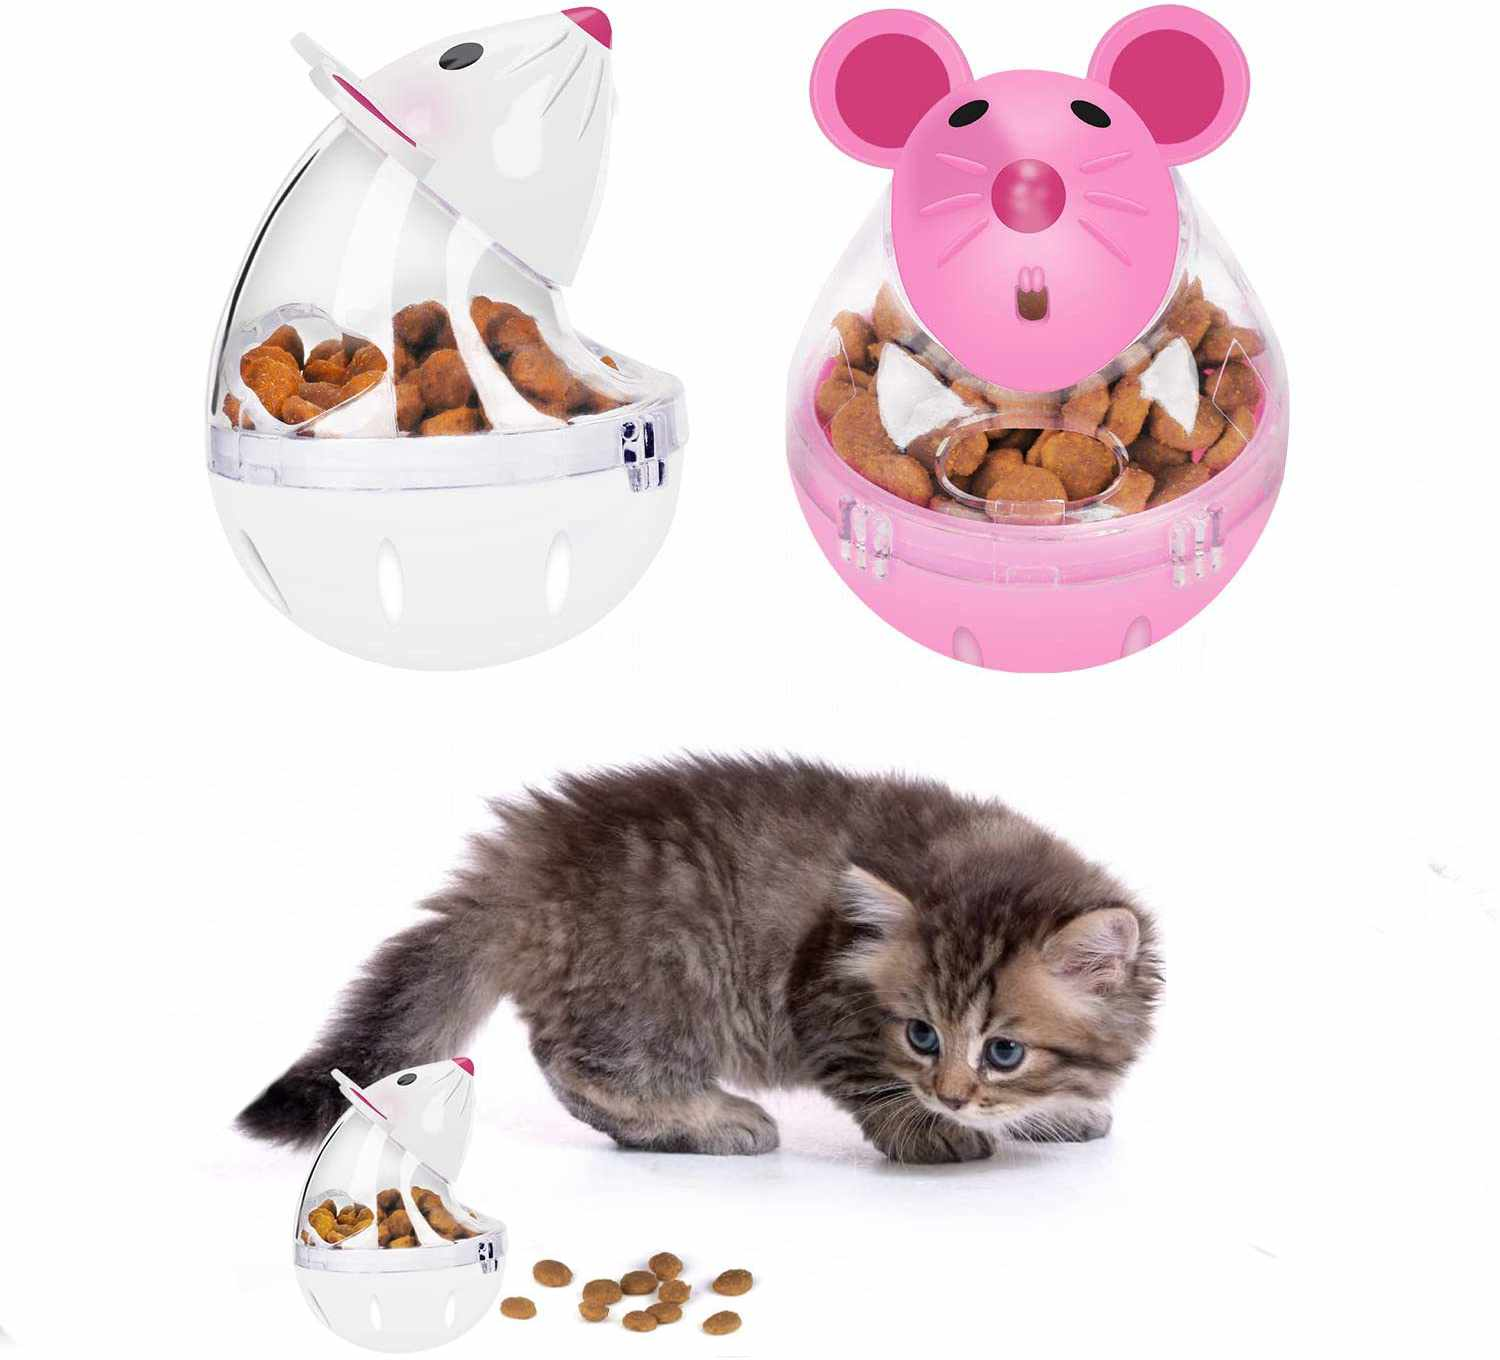 Mice Shaped Cat Slow Feeder Toy